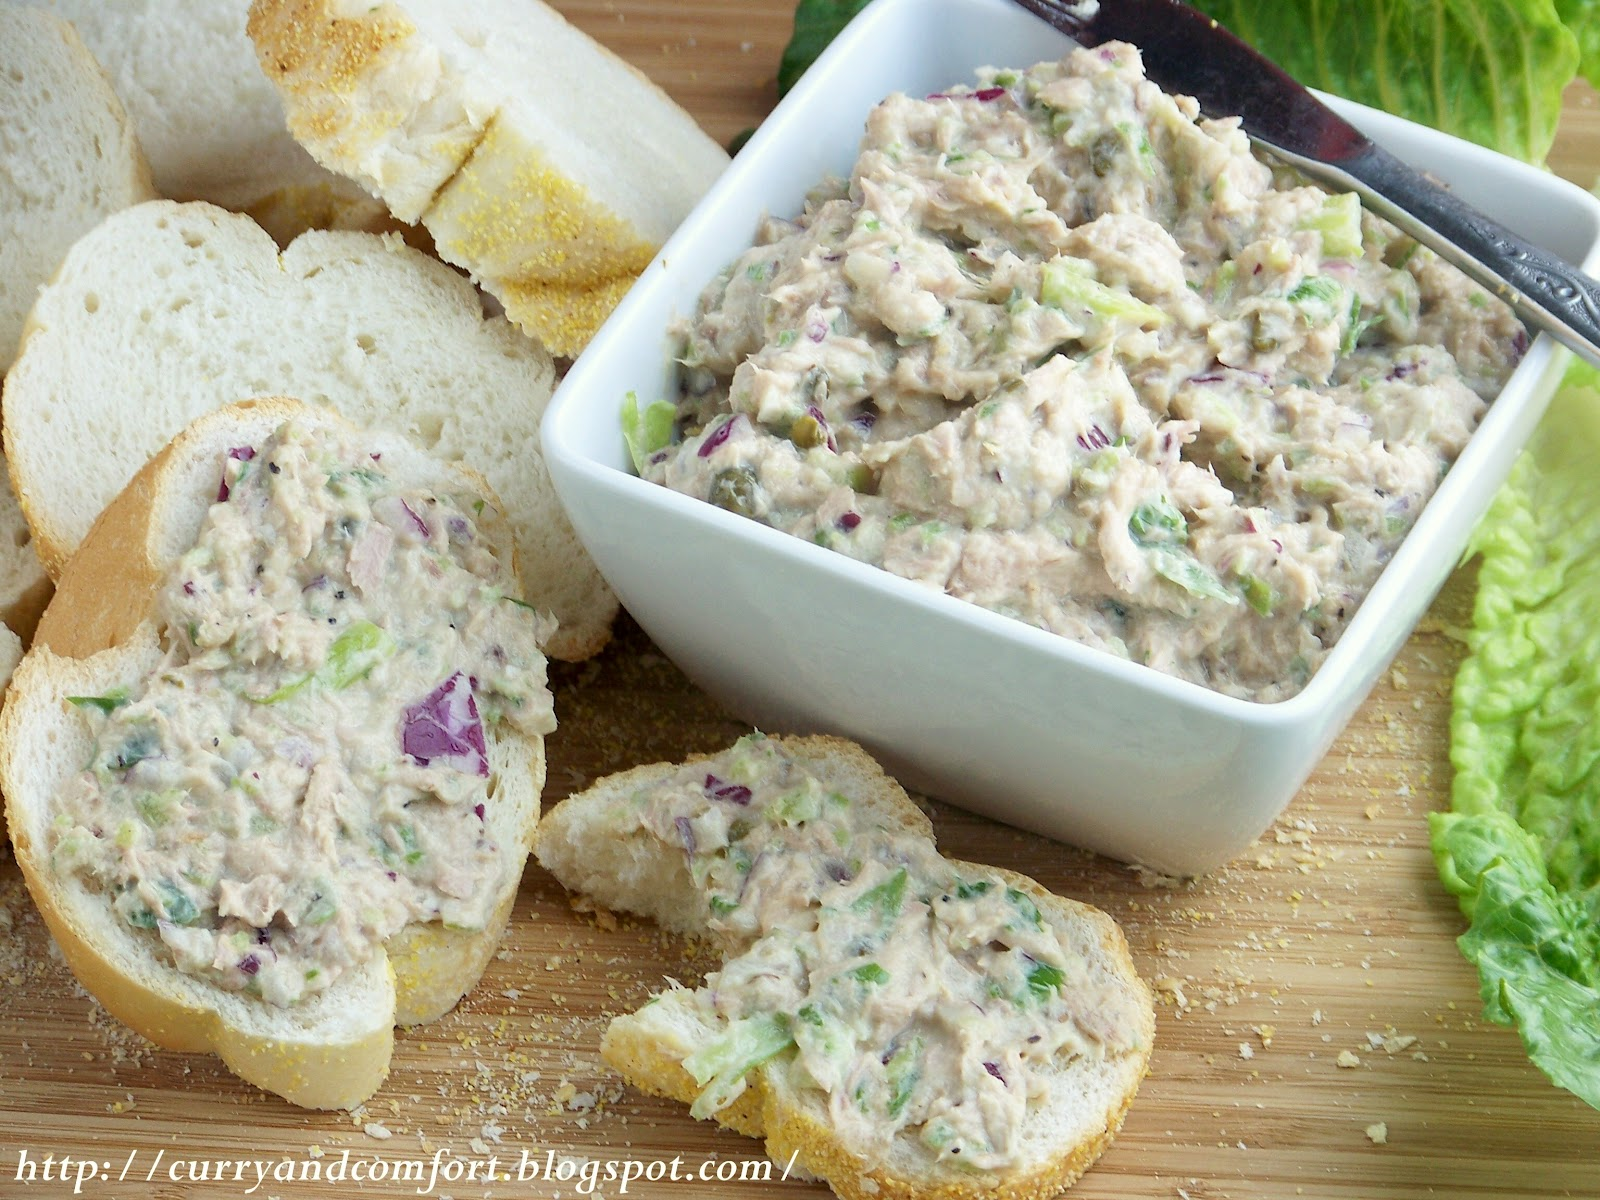 Kitchen simmer fully loaded tuna salad for Best tuna fish salad